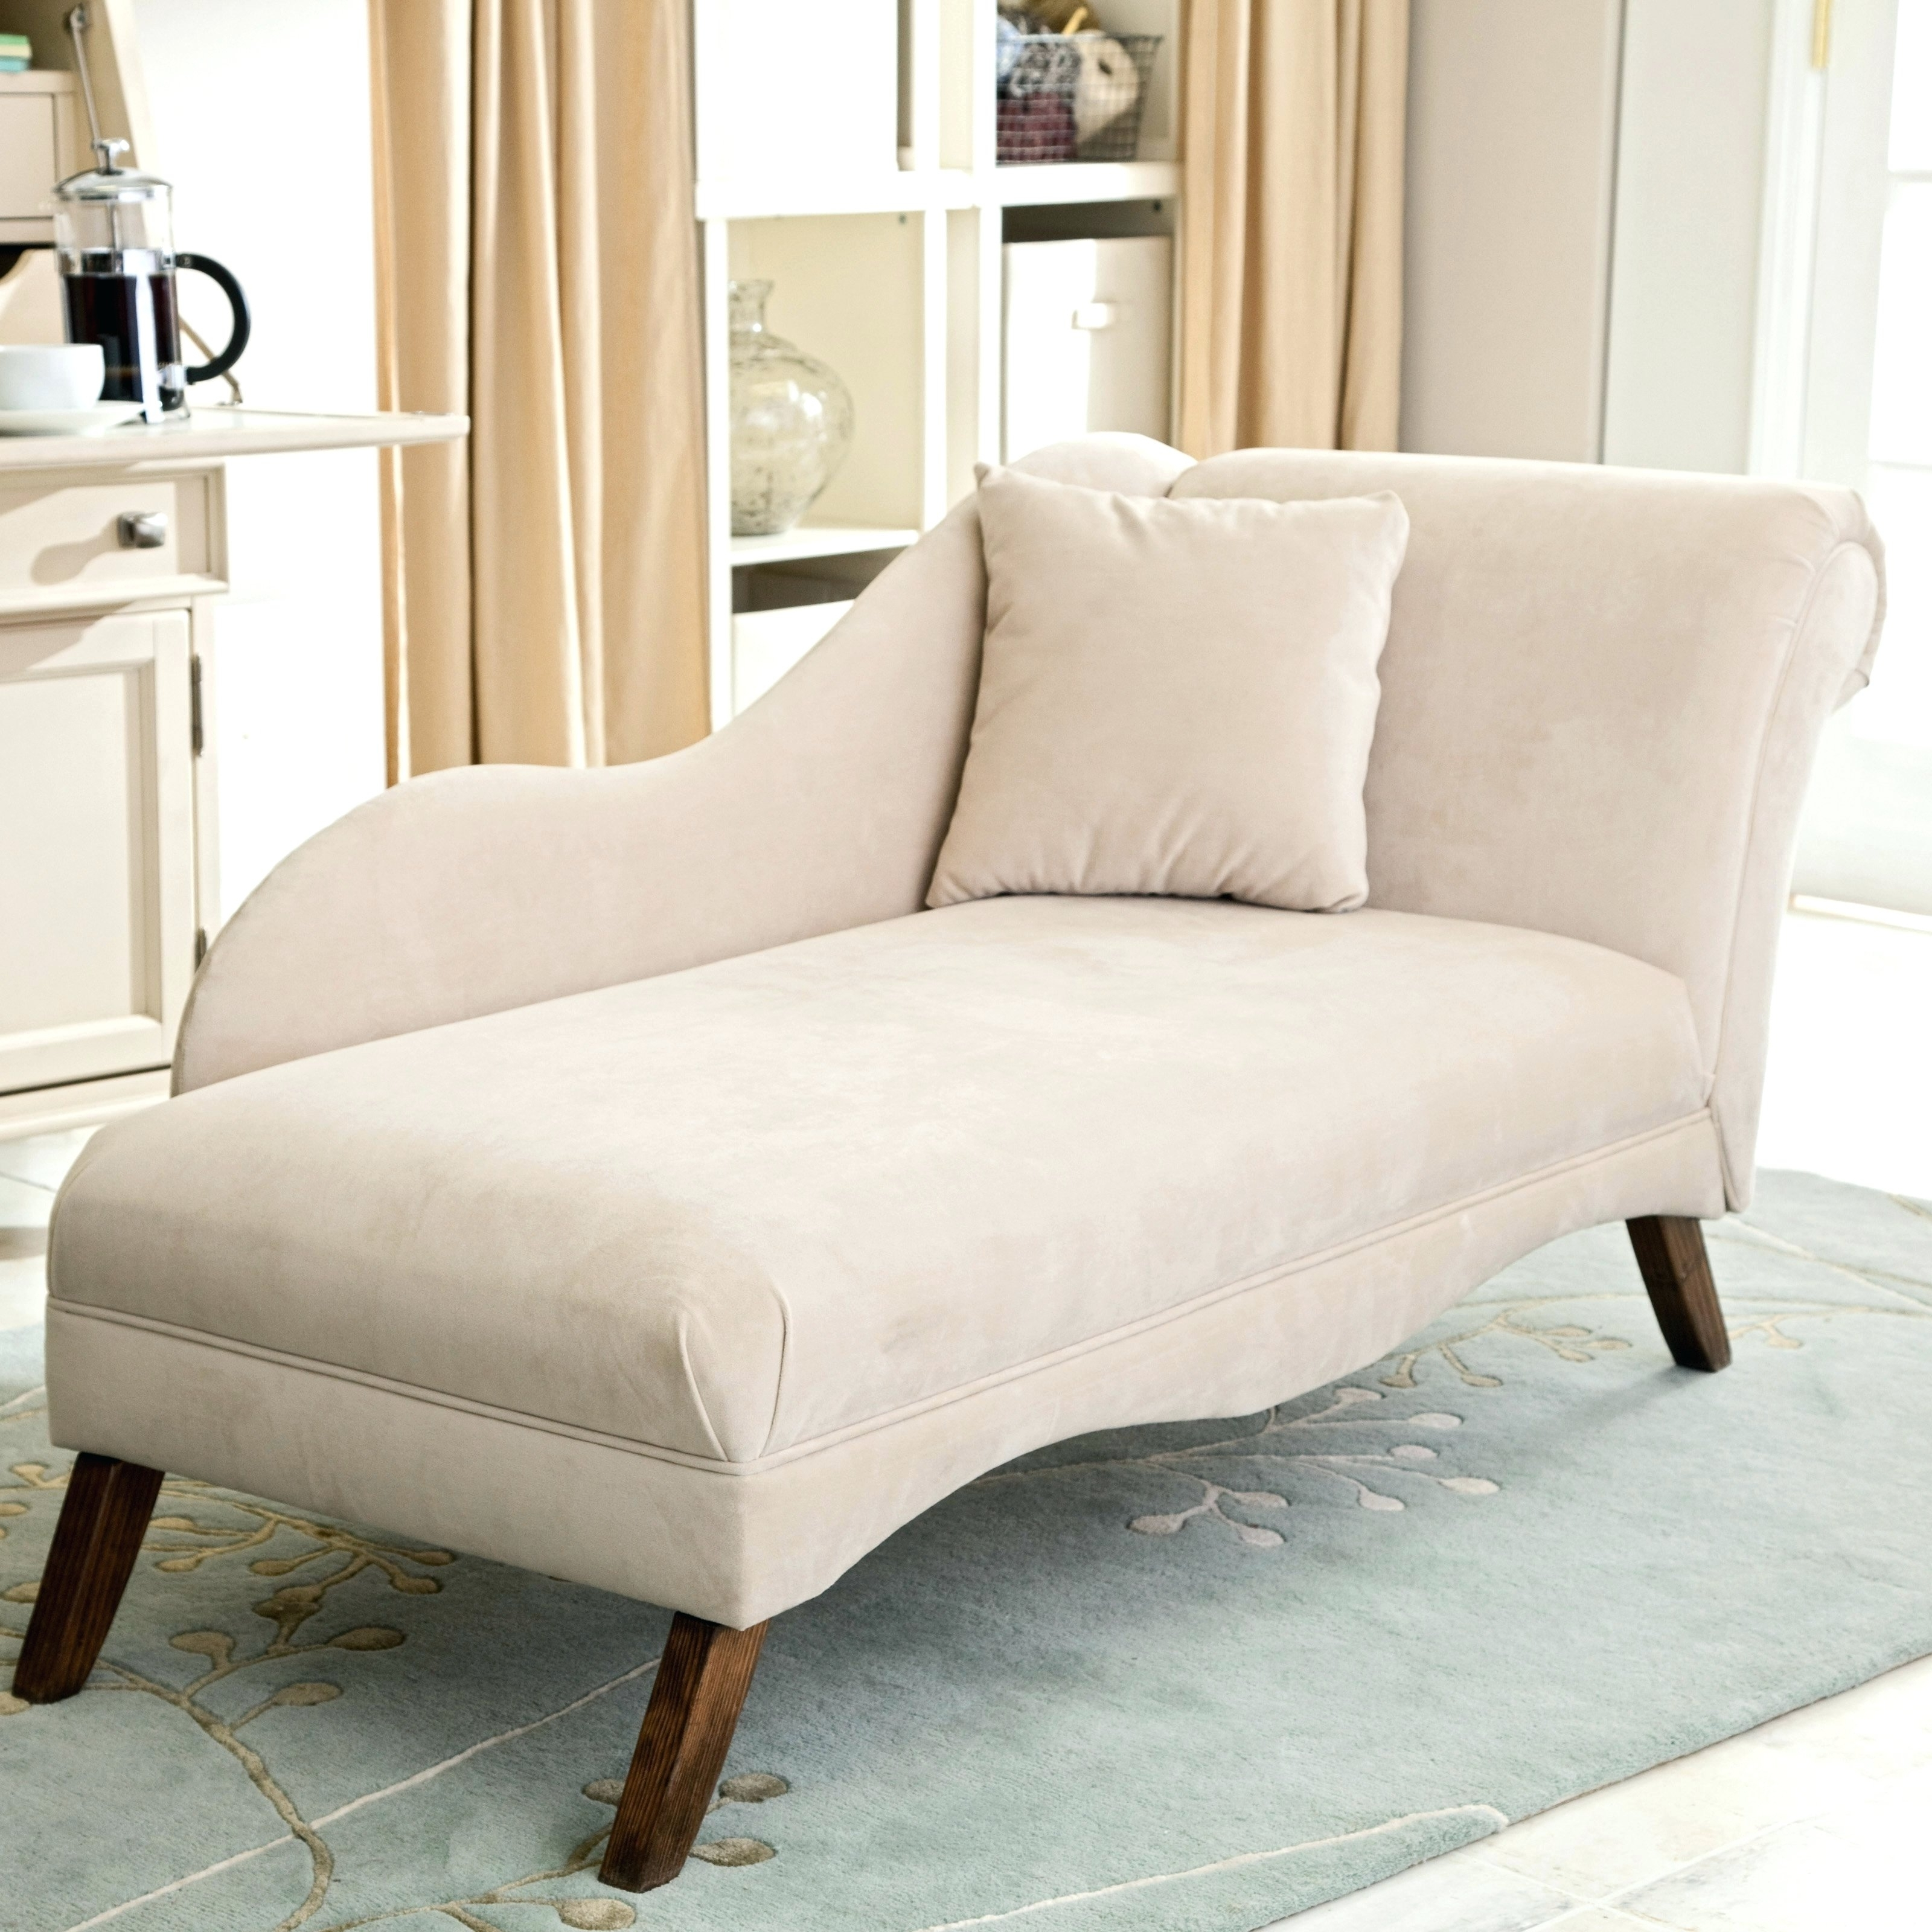 Current Comfy Chaise Lounges Intended For Bedroom : Lounge Chairs For Bedroom Image Ideas Designs Comfy (View 7 of 15)